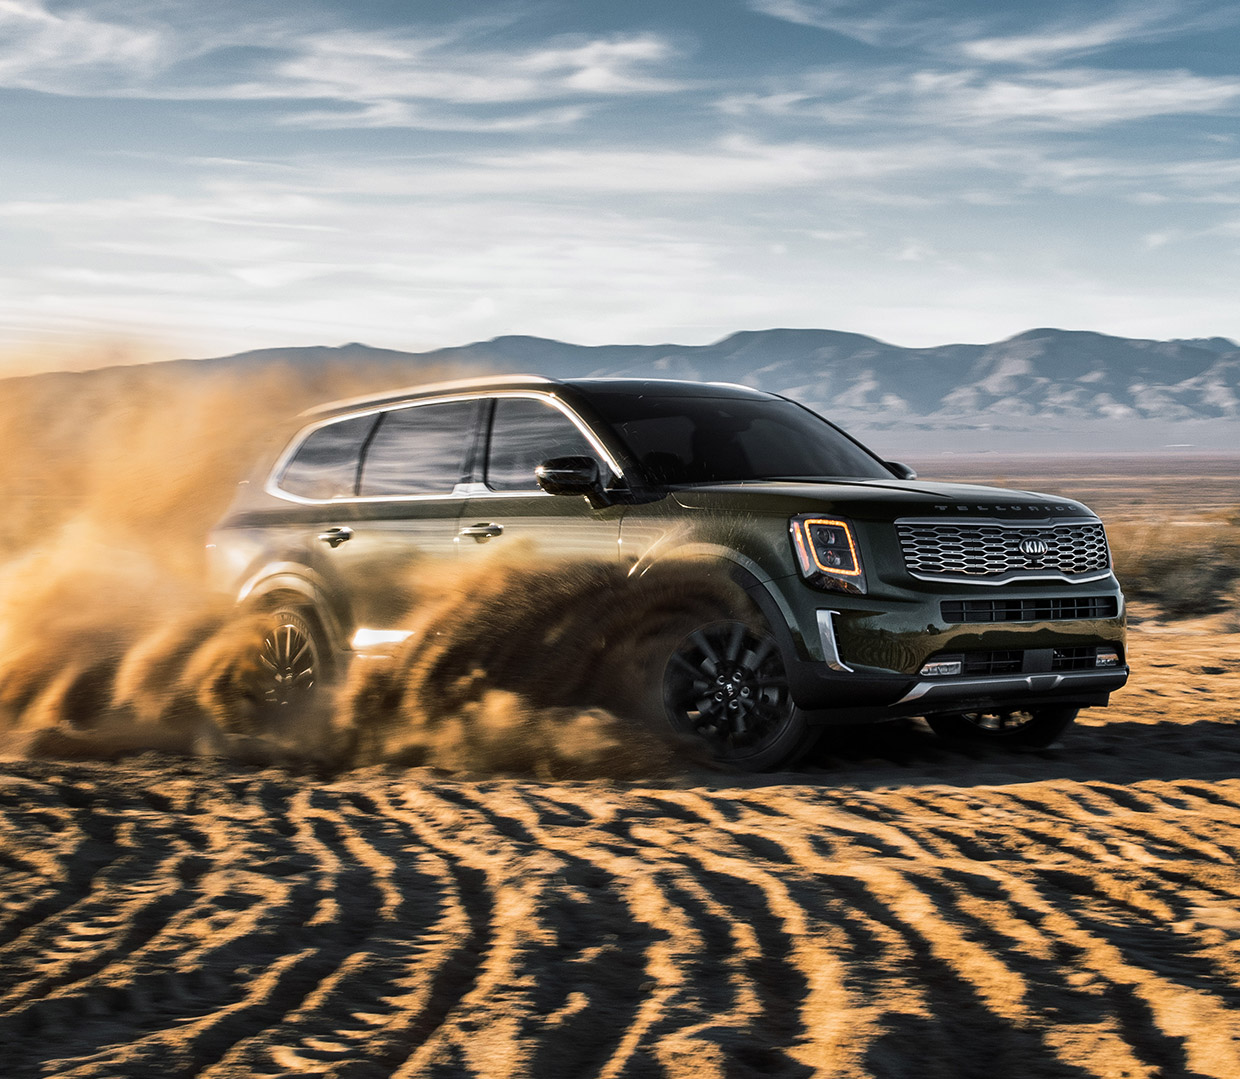 2020 Kia Telluride Offers Space, Style, and Affordability